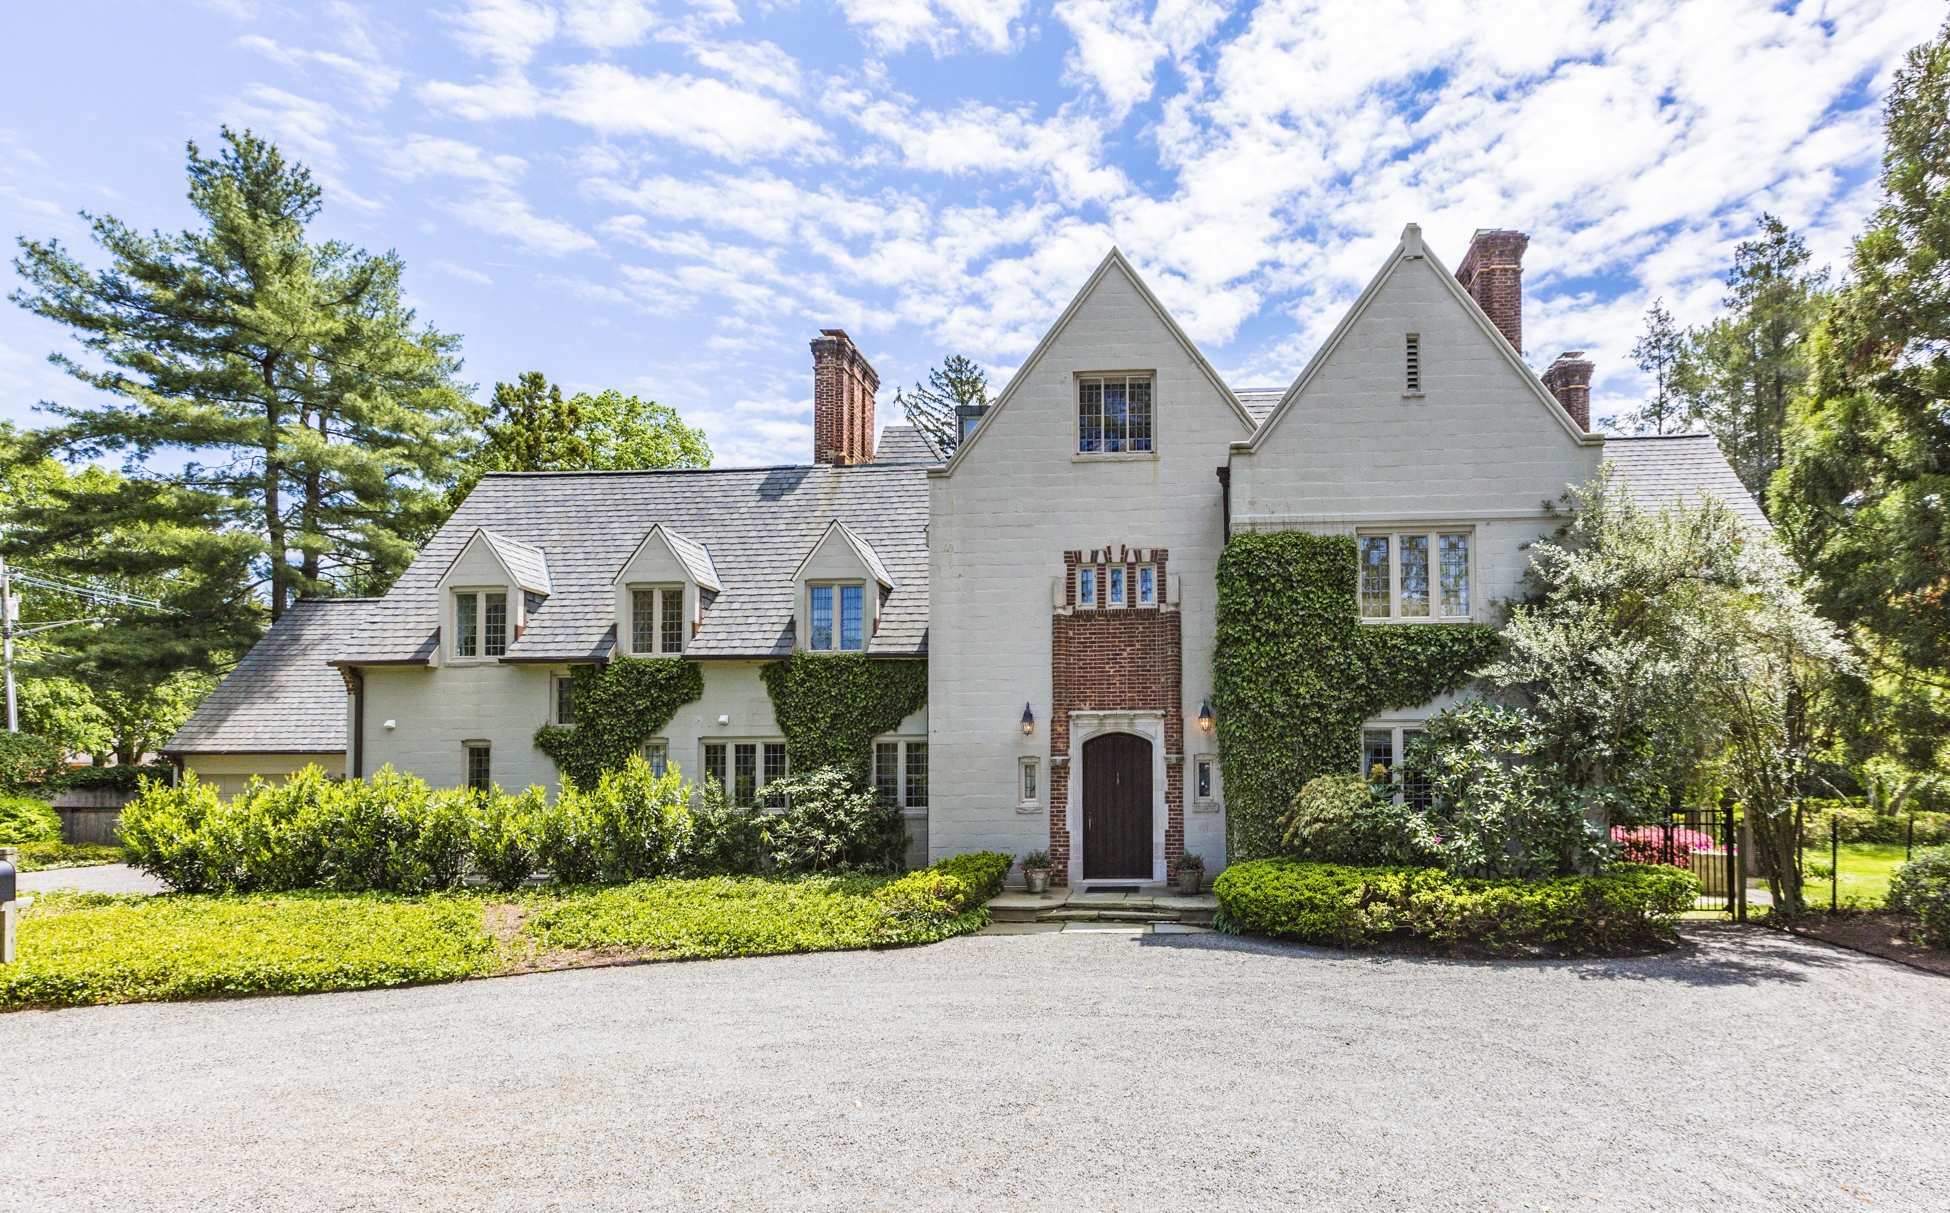 Villa per Vendita alle ore Normandy-inspired Manor in Princeton 114 Elm Road Princeton, New Jersey, 08540 Stati Uniti